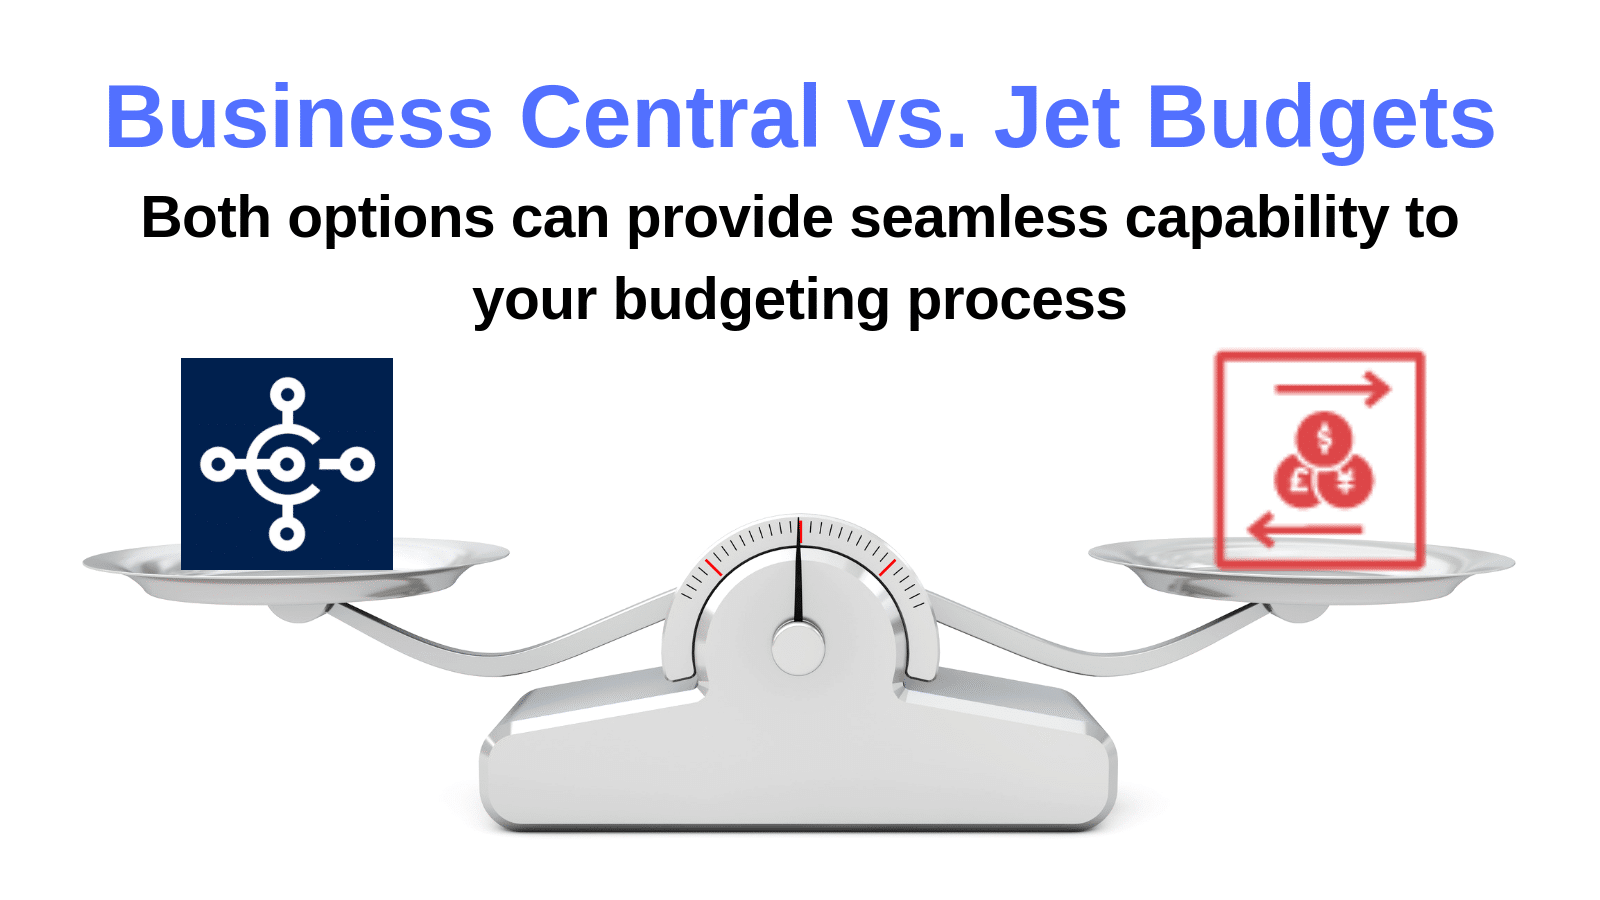 Business Central vs Jet Budgets: Both options can provide seamless capability to your budgeting process